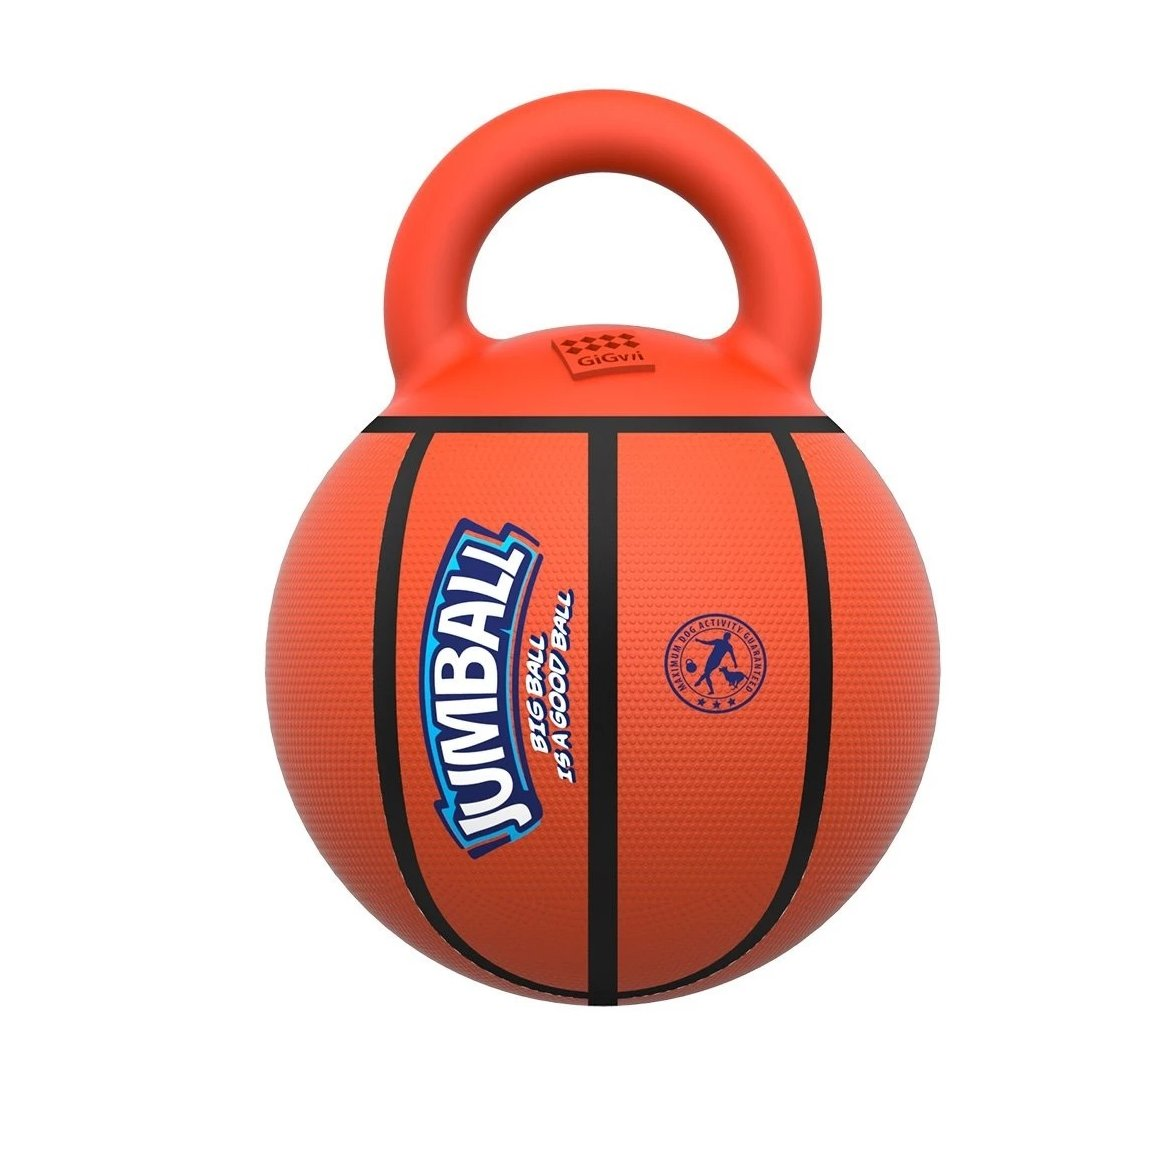 Gigwi Jumball with Rubber Handle Basket Ball Dog Toy (8 inch) for Medium/Large Dog - pet-club-india